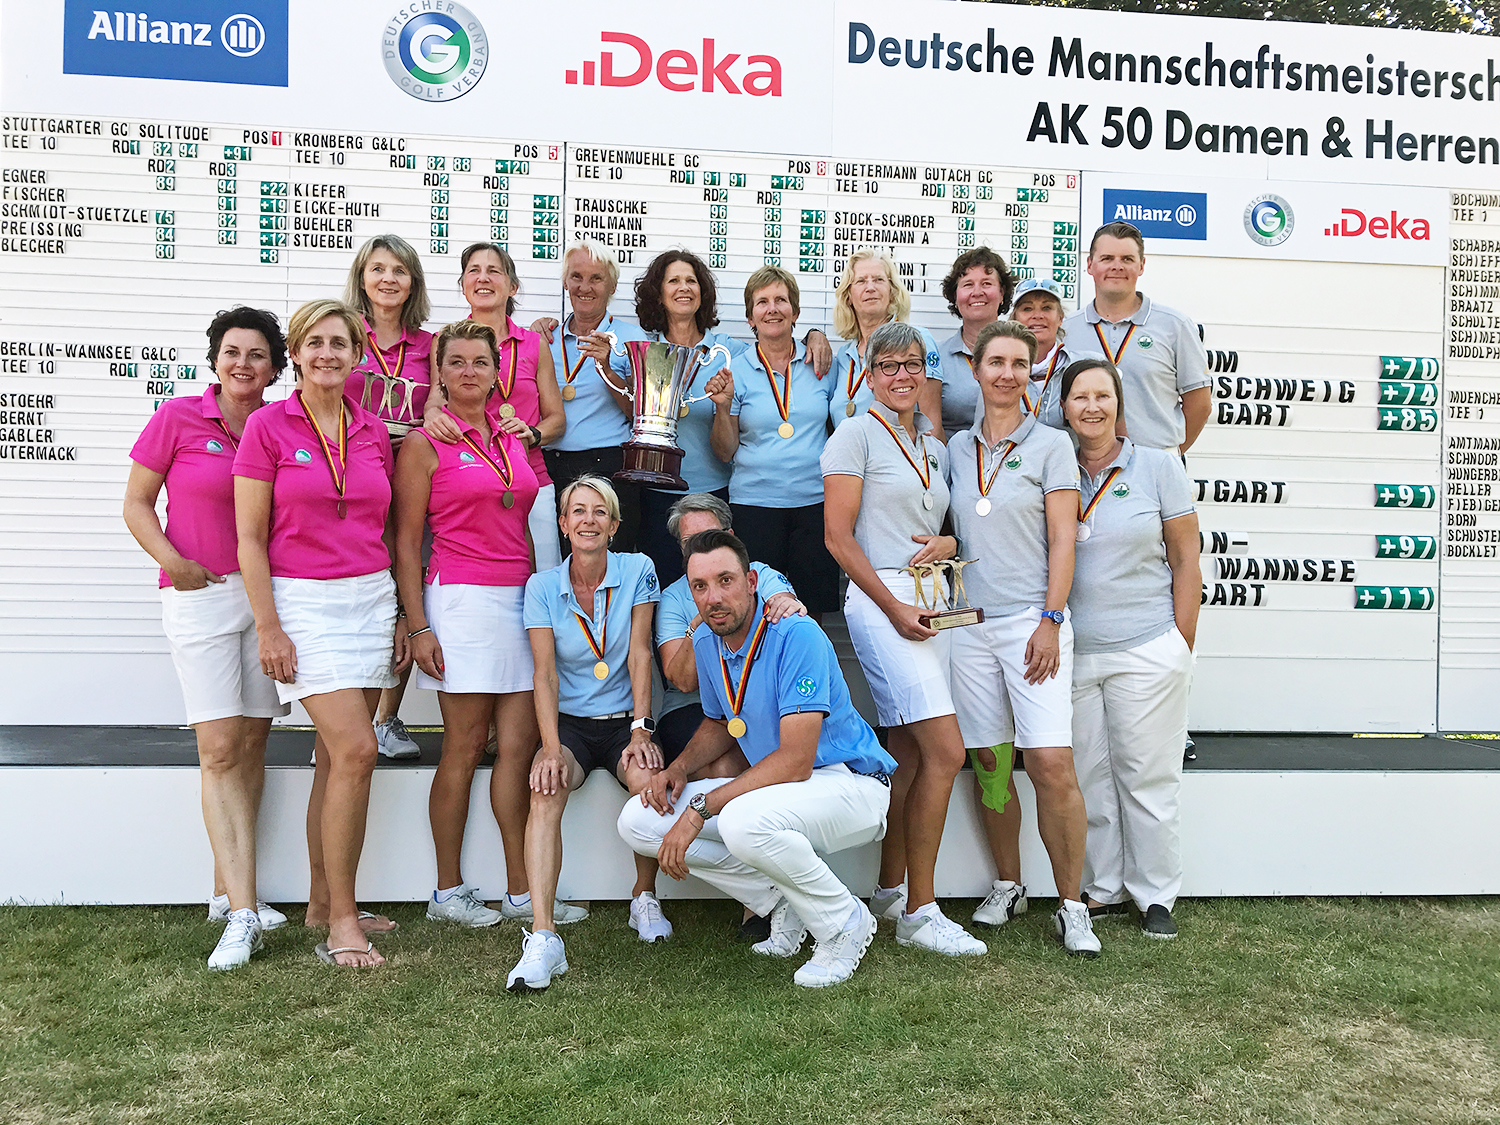 Premierenausgabe der DMM AK 50 Damen geht an den Stuttgarter GC Solitude (Foto: Langer Sport Marketing)